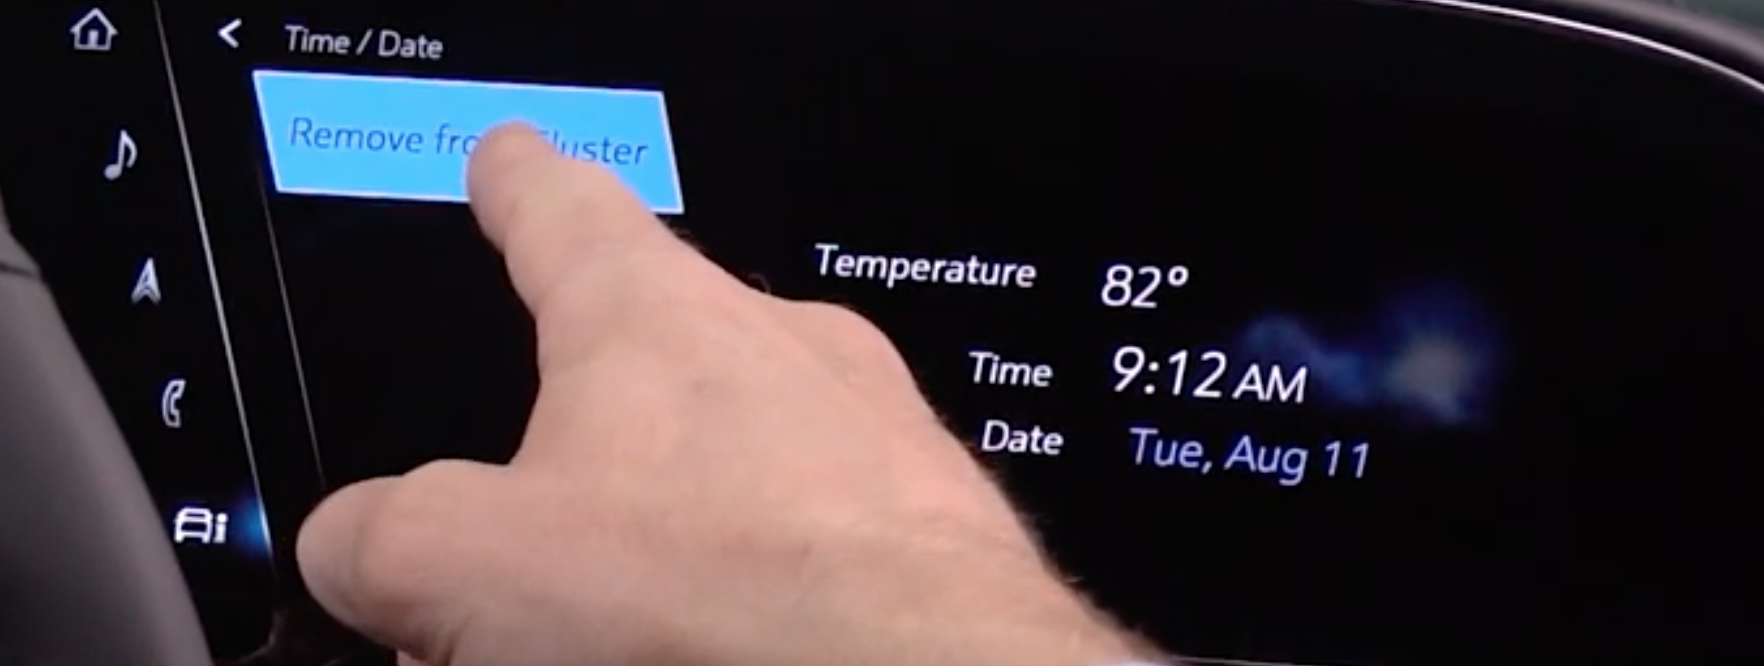 A user chosing the remove the time and date information from the cluster by pressing a button